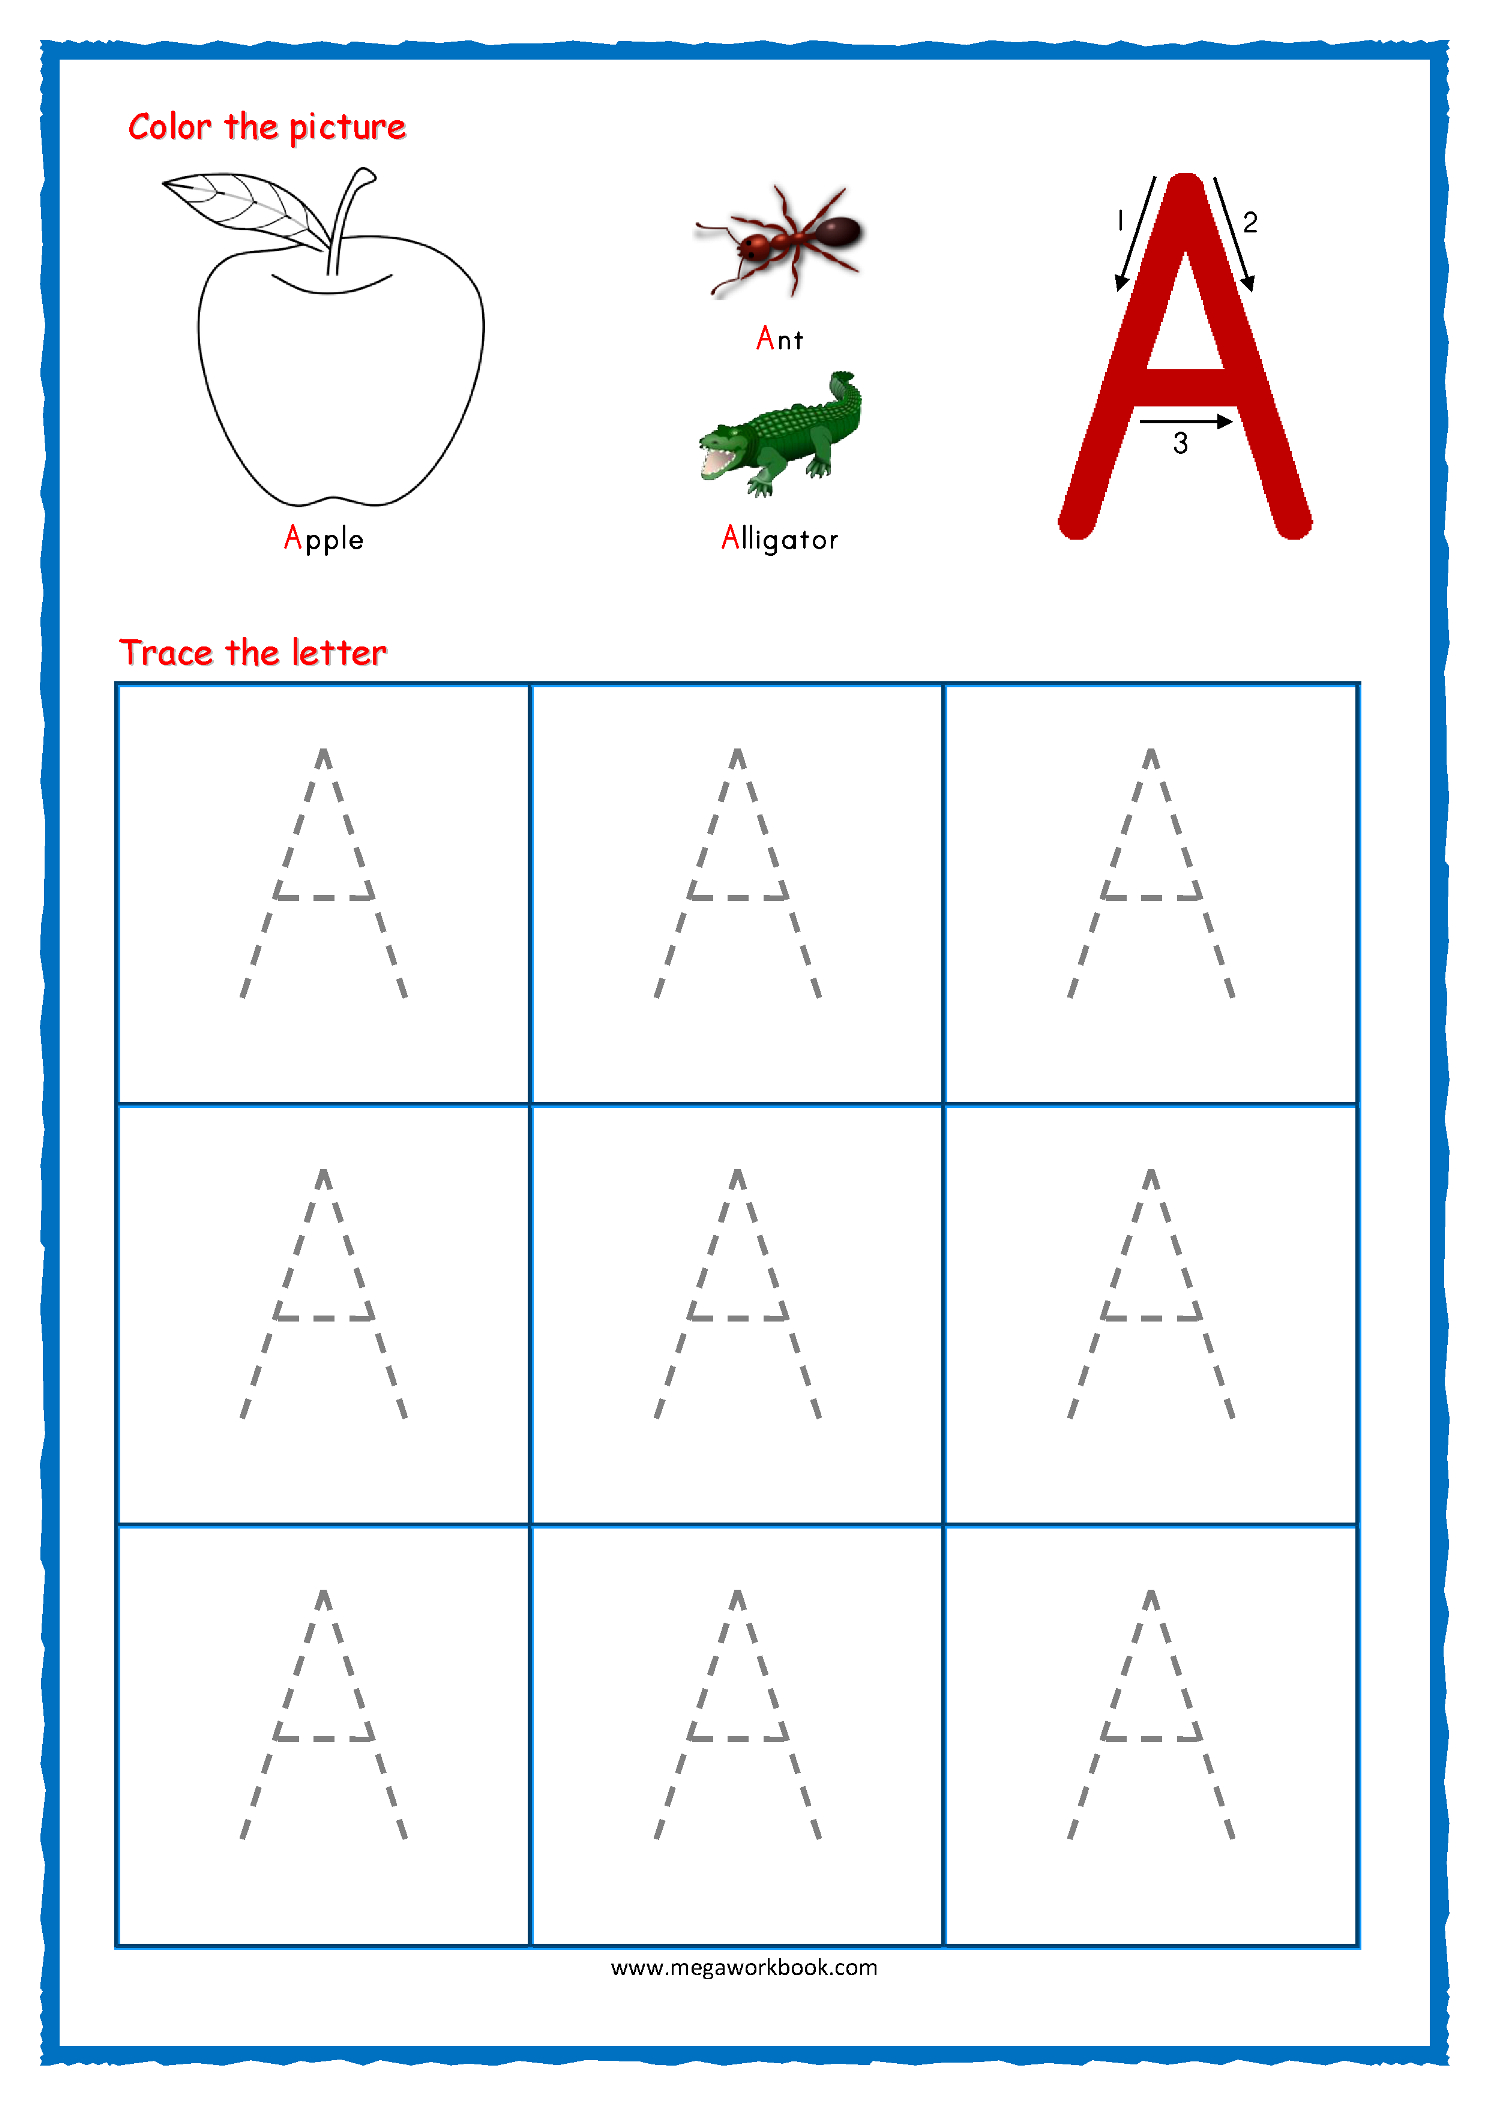 Tracing Letters - Alphabet Tracing - Capital Letters throughout Free Printable Tracing Letters For Preschoolers